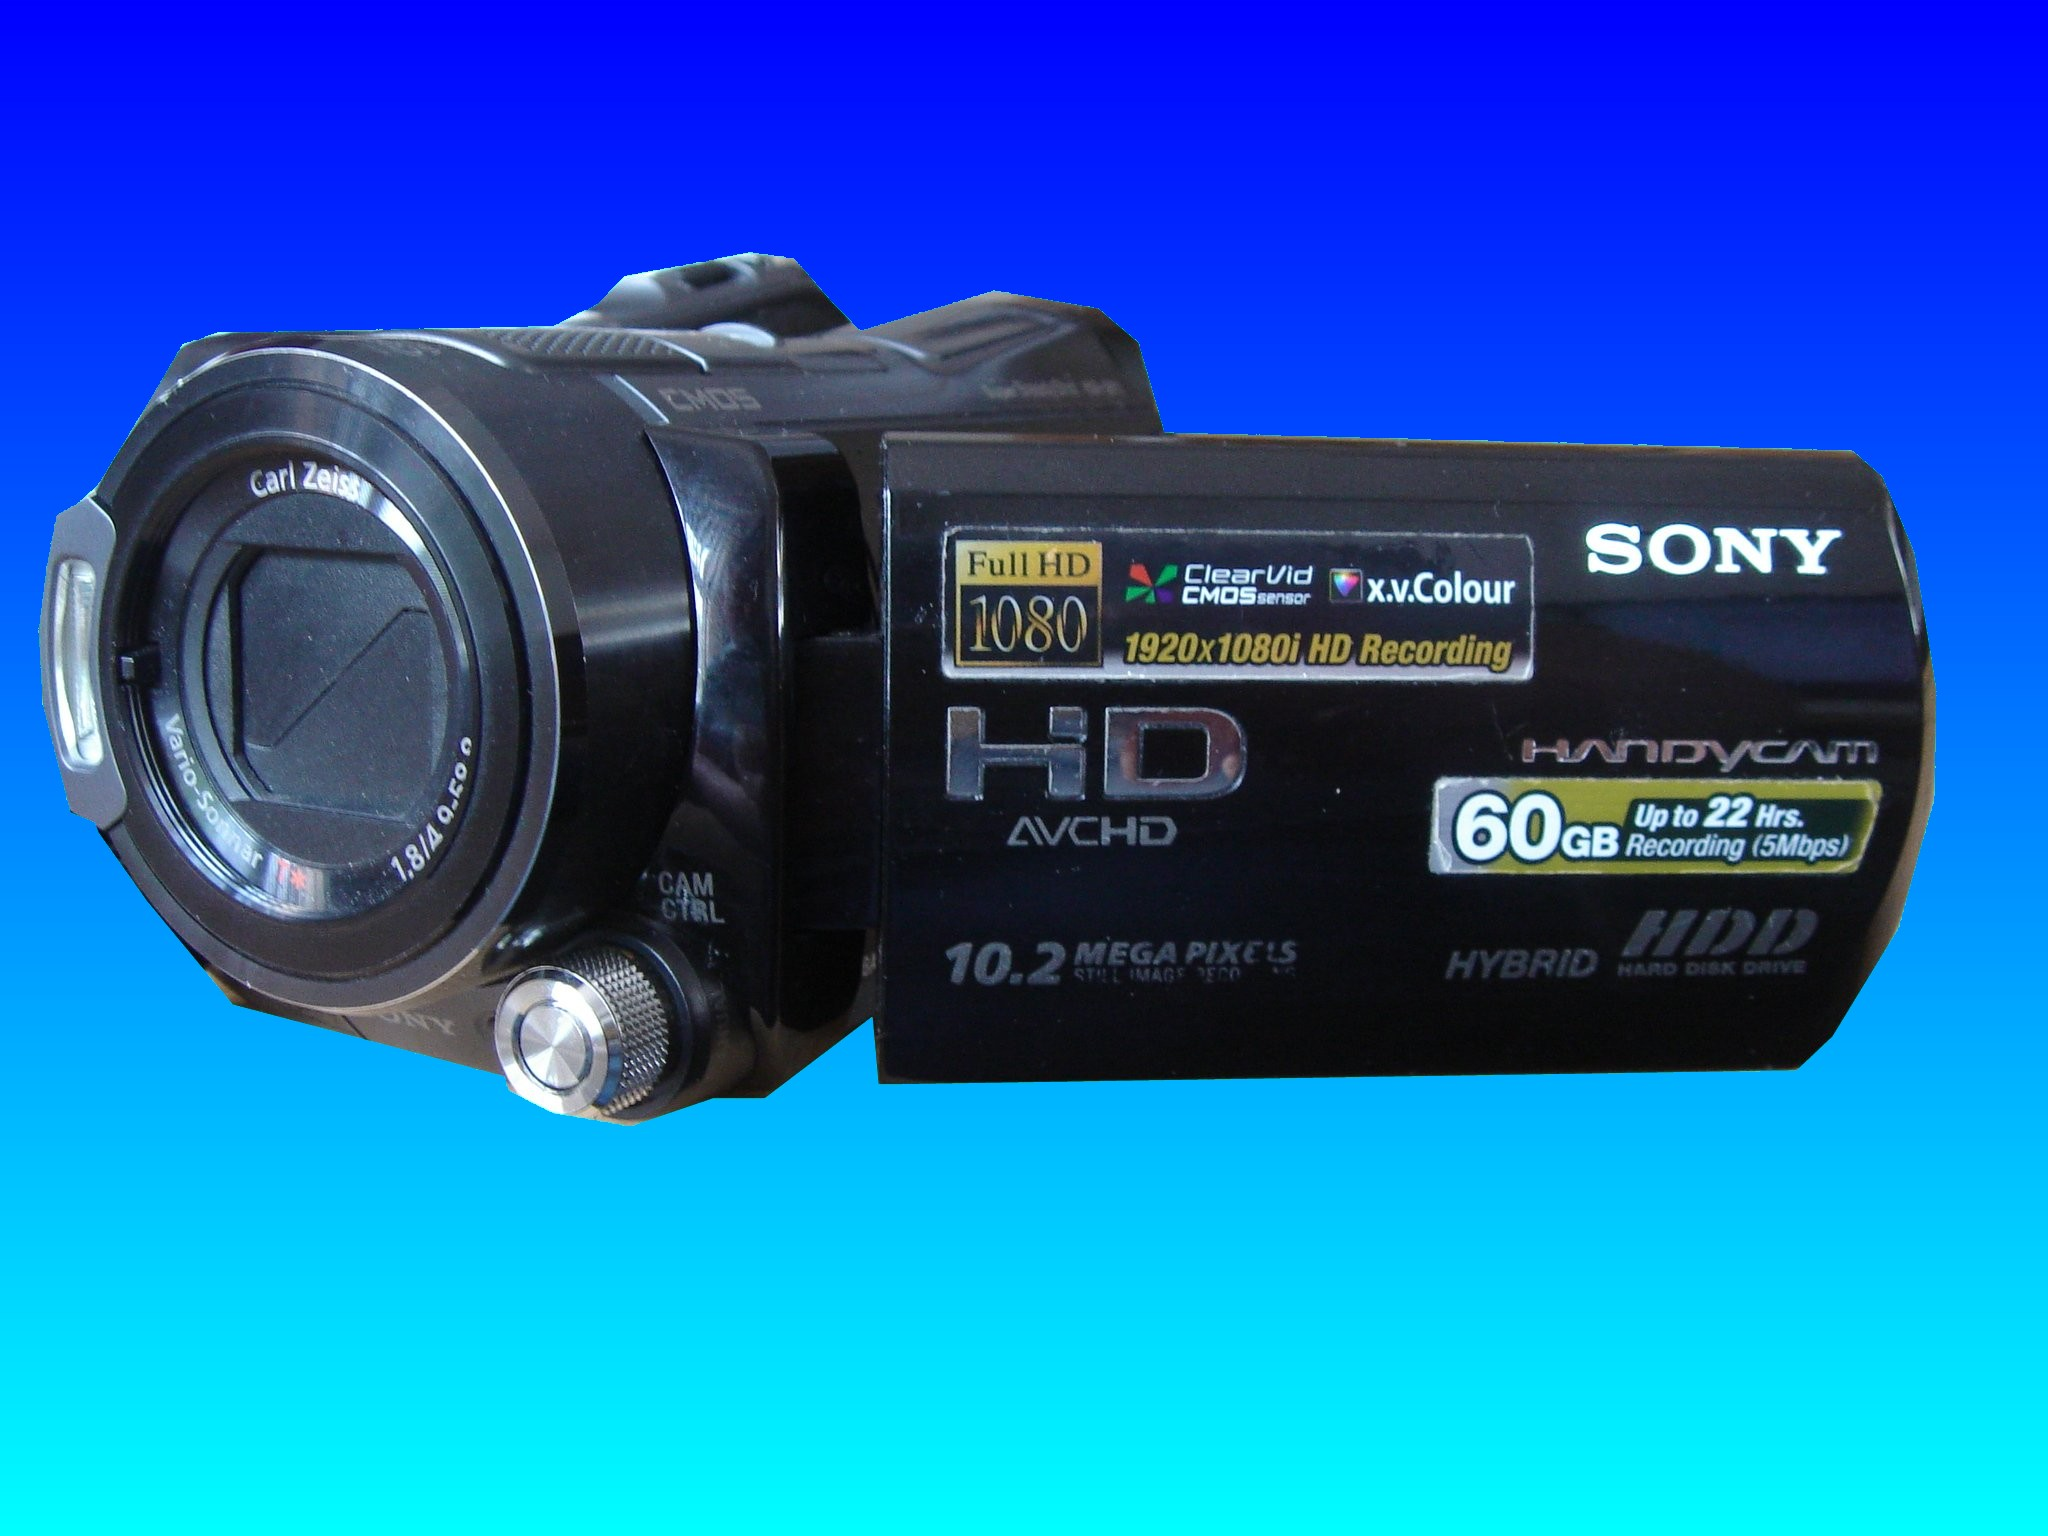 A Sony HDR-SR11E avchd high definition video camera used to shoot a wedding. The client deleted the HD videos from the hard drive so sent the handycam to us for recovery of the clips.